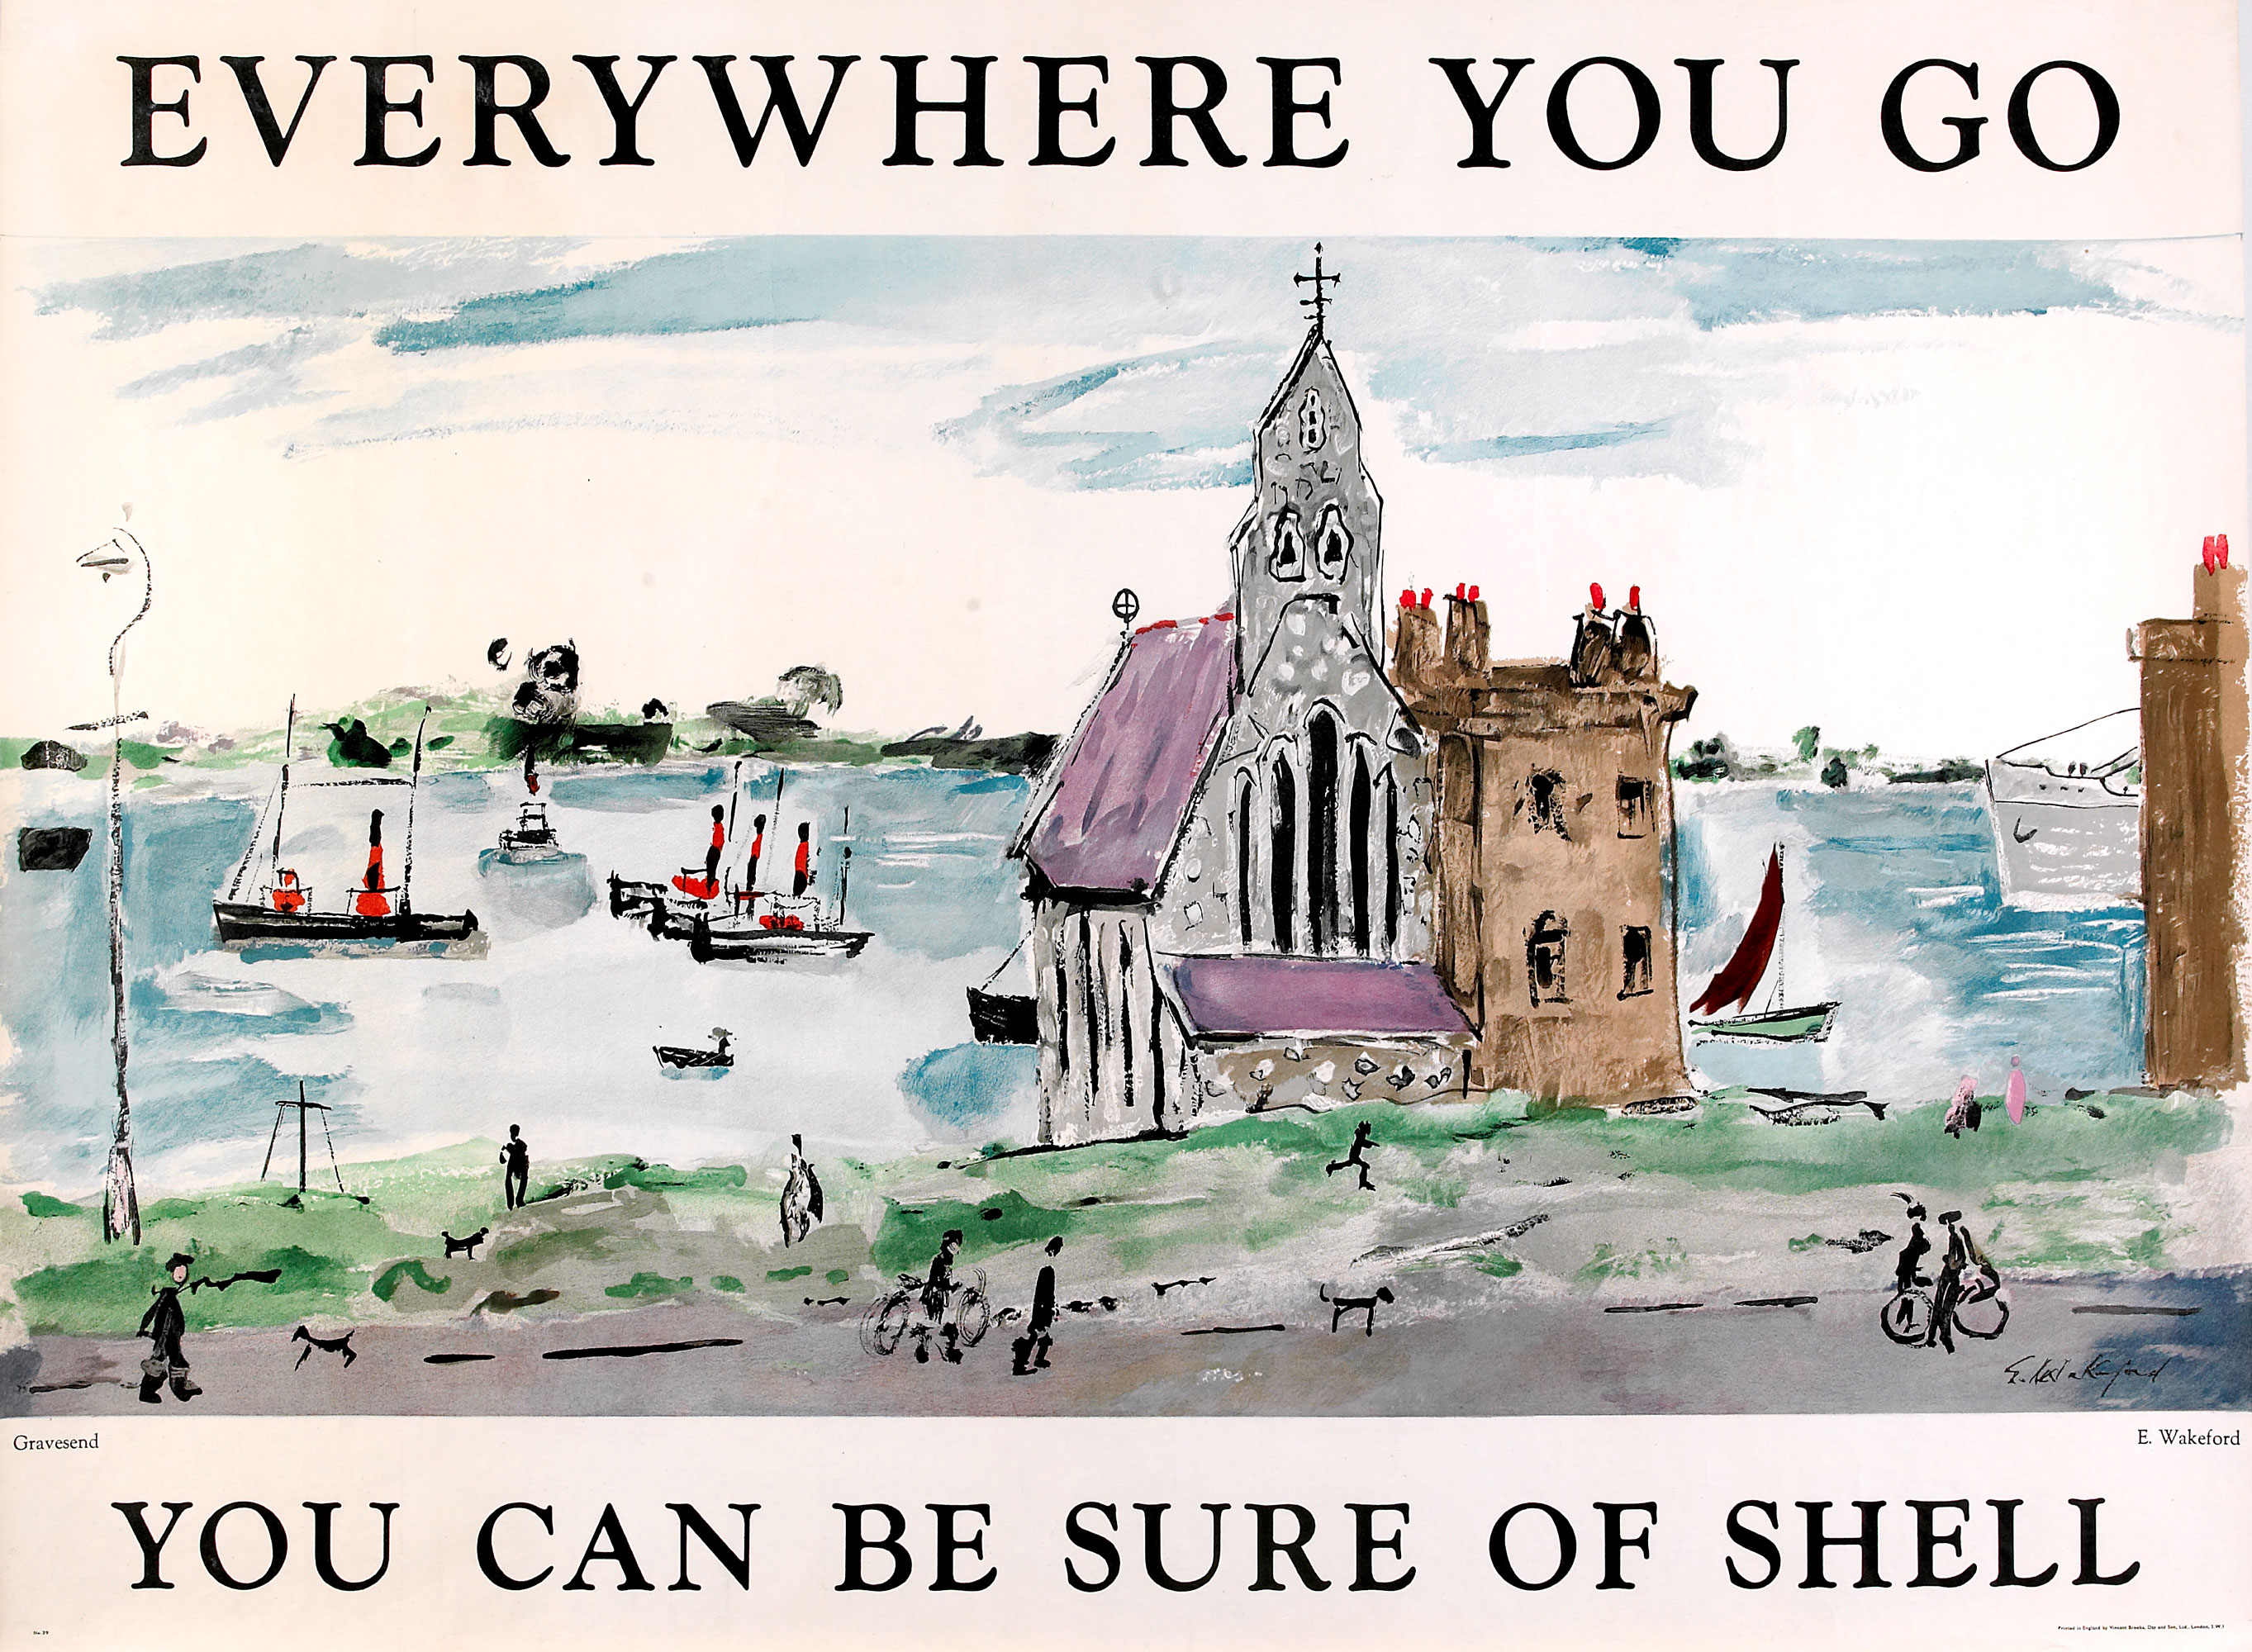 Shell poster number 1539, Gravesend (1952) by Edward Wakeford. Painting of the waterfront at Gravesend, featuring St. Andrews Mission House.